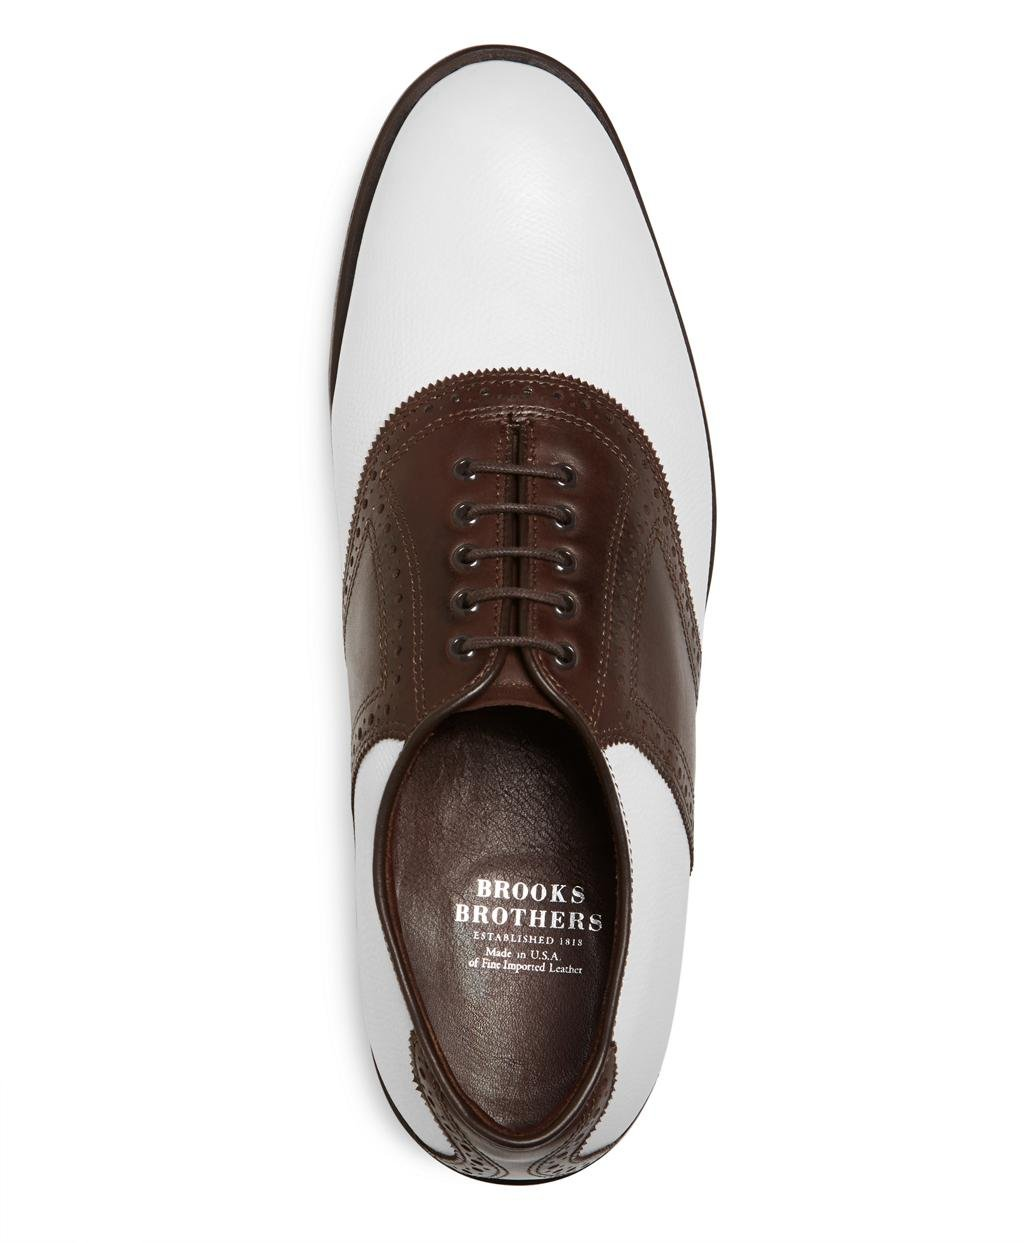 4aebd5562d898 Lyst - Brooks Brothers Redan Golf Shoes in White for Men